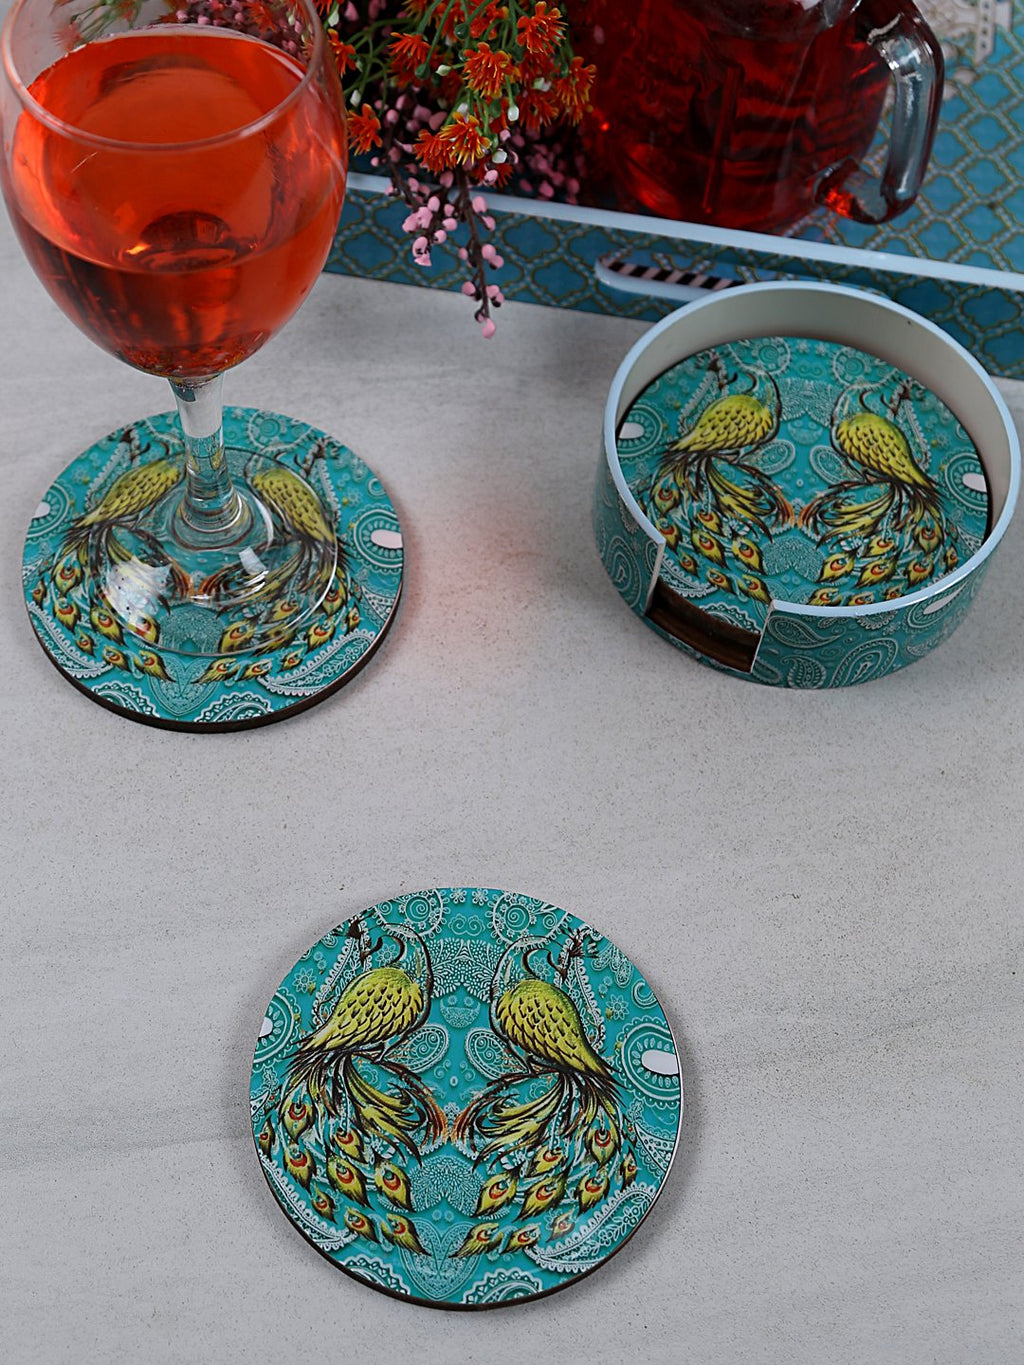 Handcrafted Pleasing Peacocks Circular Wooden Coasters Set Of 4